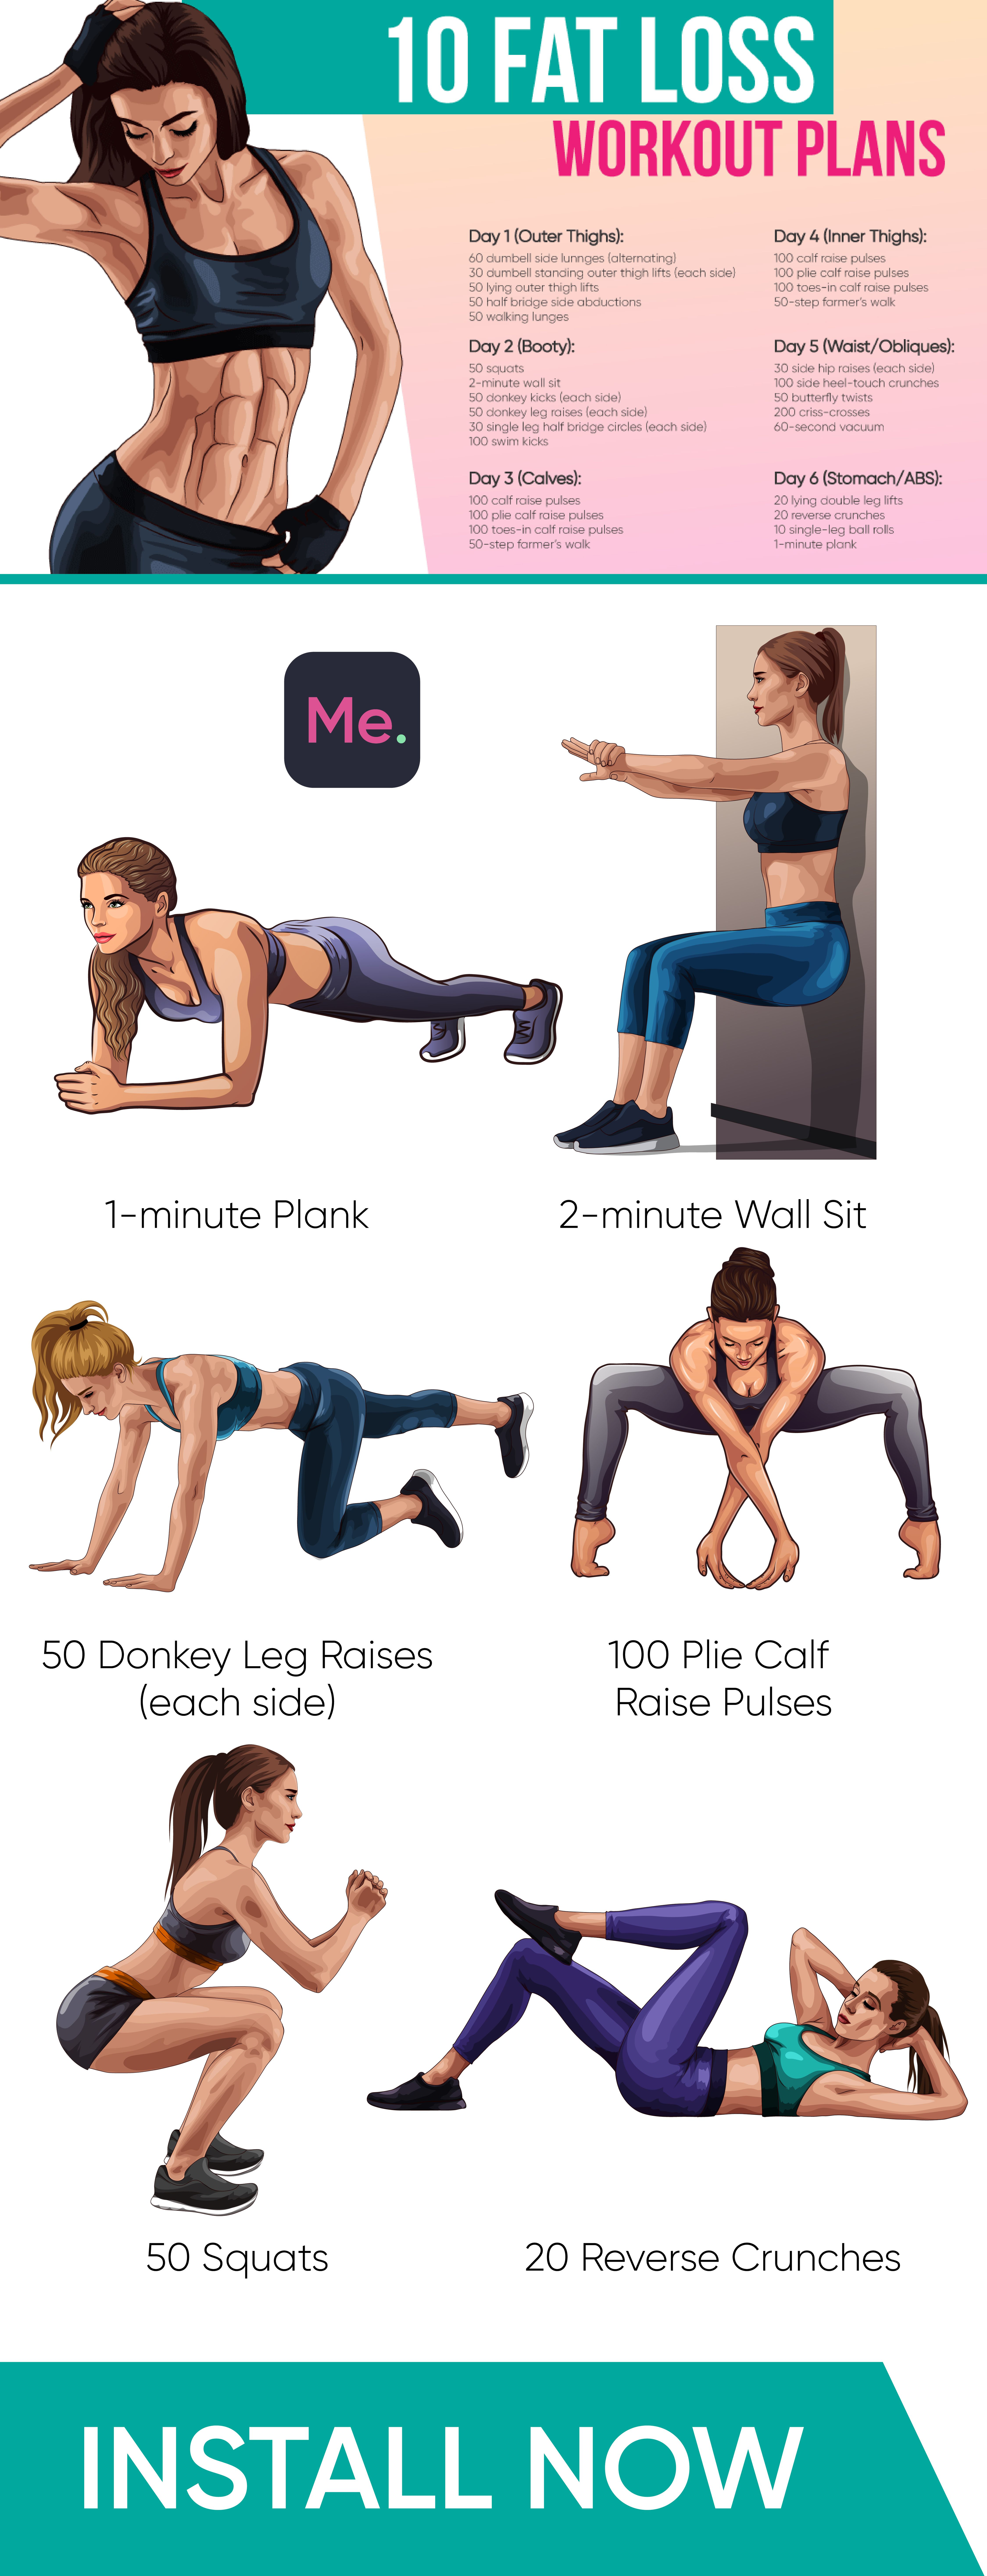 Lose the weight in 10 different ways!!! Choose the most